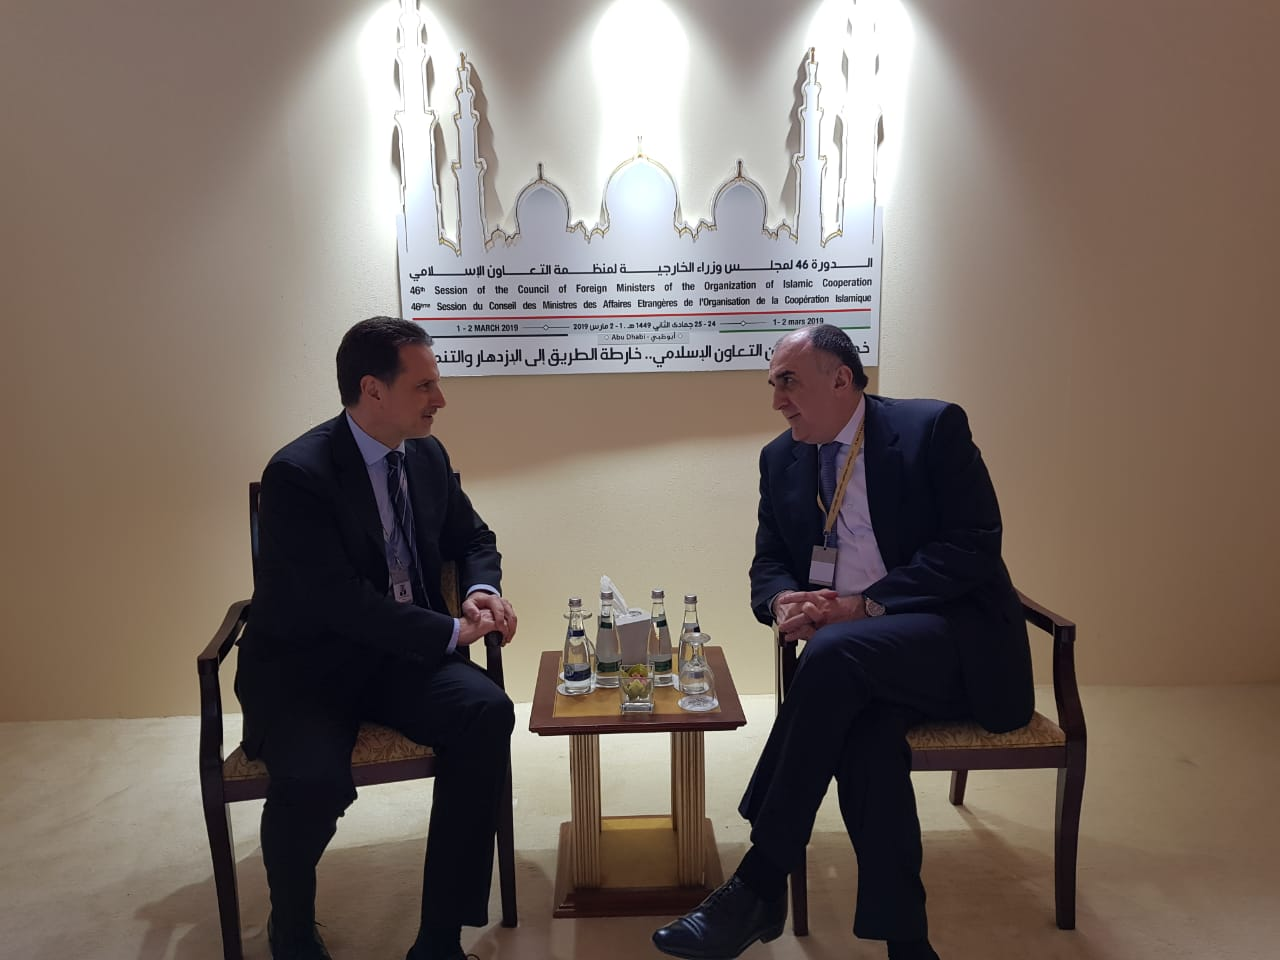 Azerbaijani FM meets with the Commissioner-General of the Relief and Works Agency for Palestine Refugees